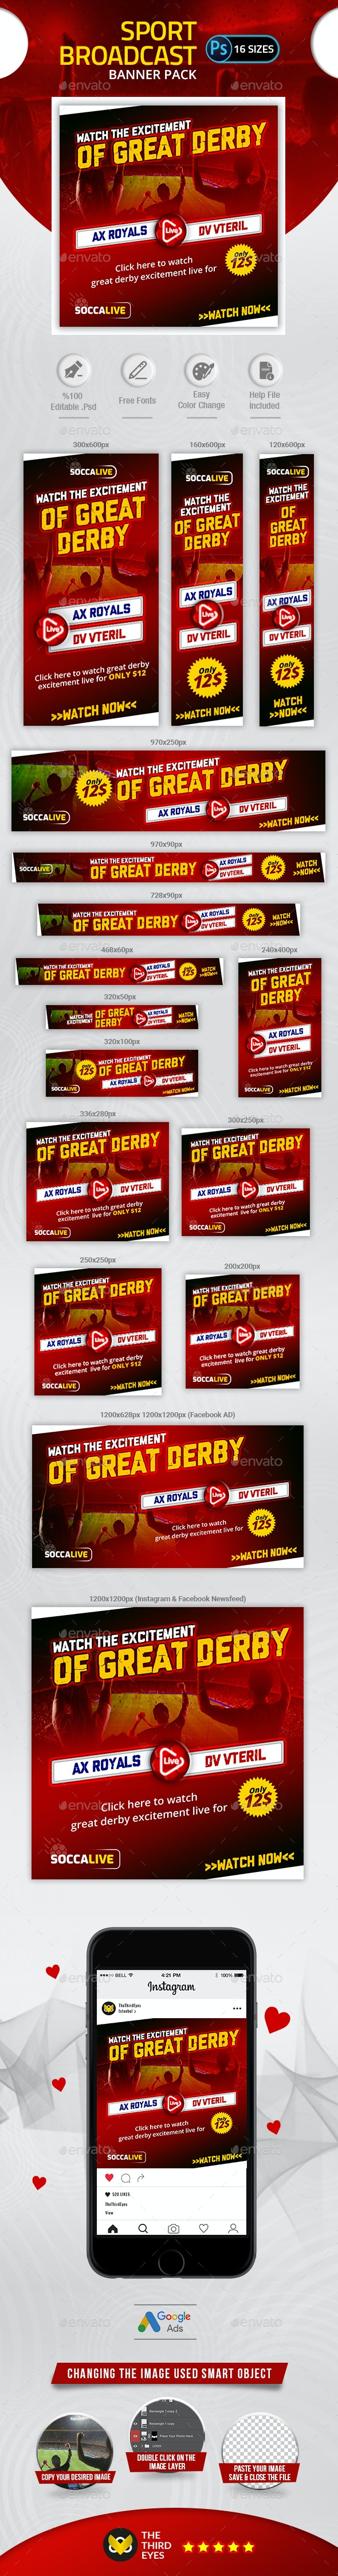 Sport Broadcast Banner - Banners & Ads Web Elements